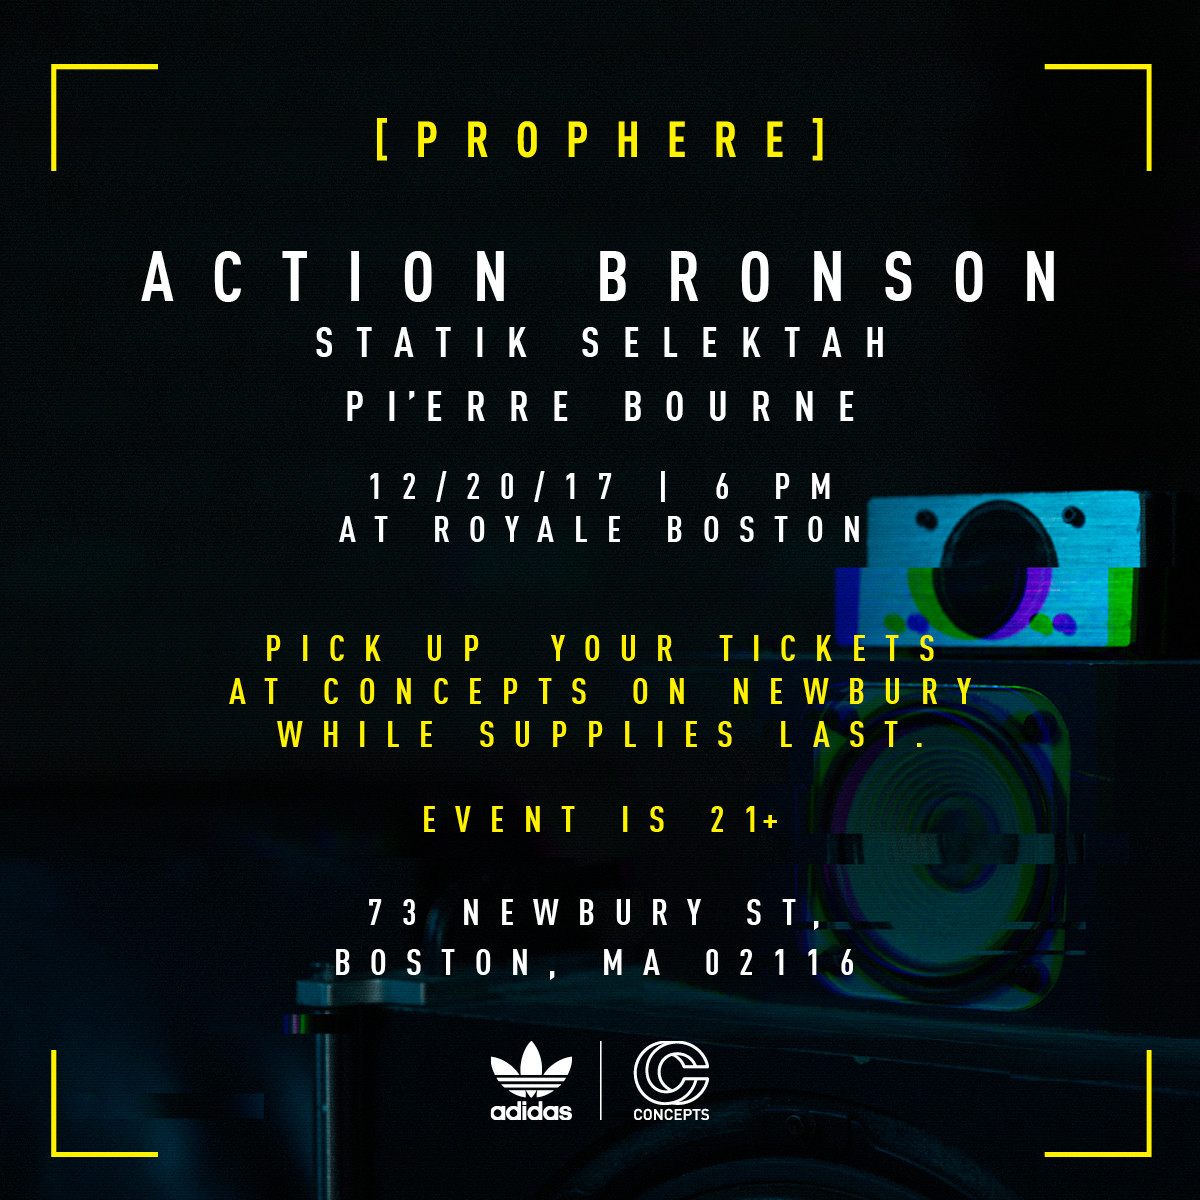 adidas_Prophere_BOSTON_Invite_121117